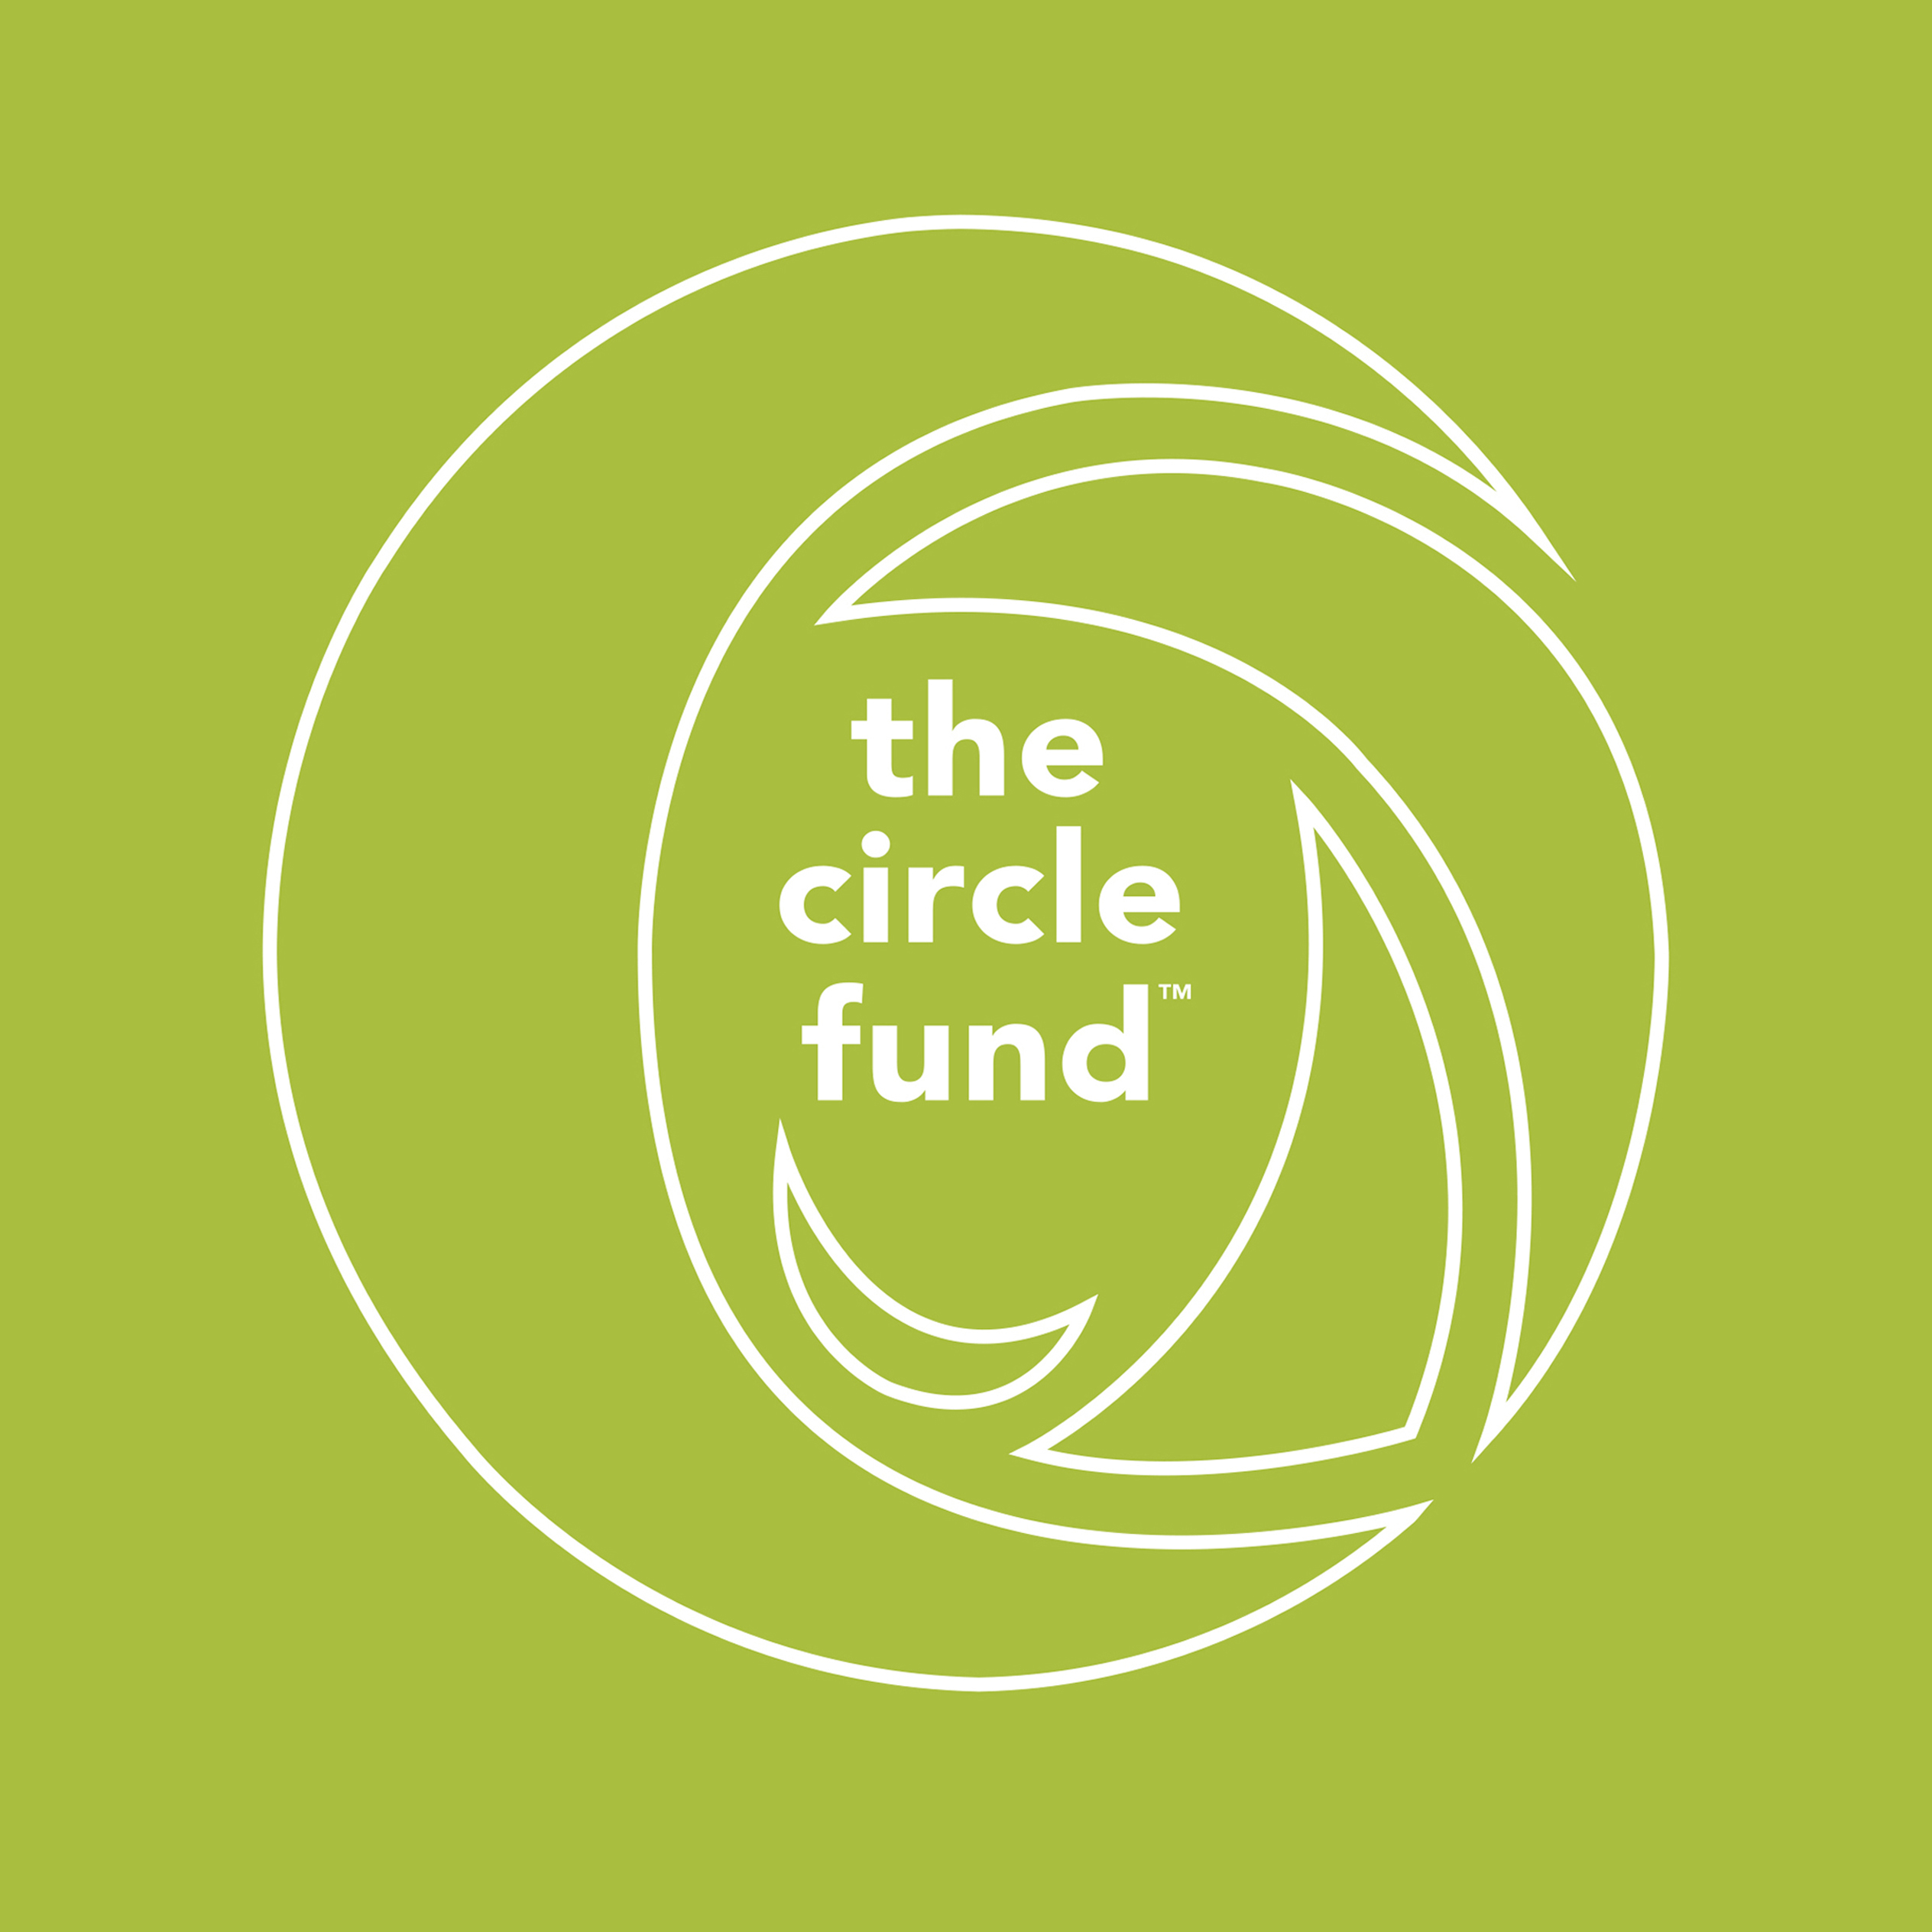 The Circle Fund